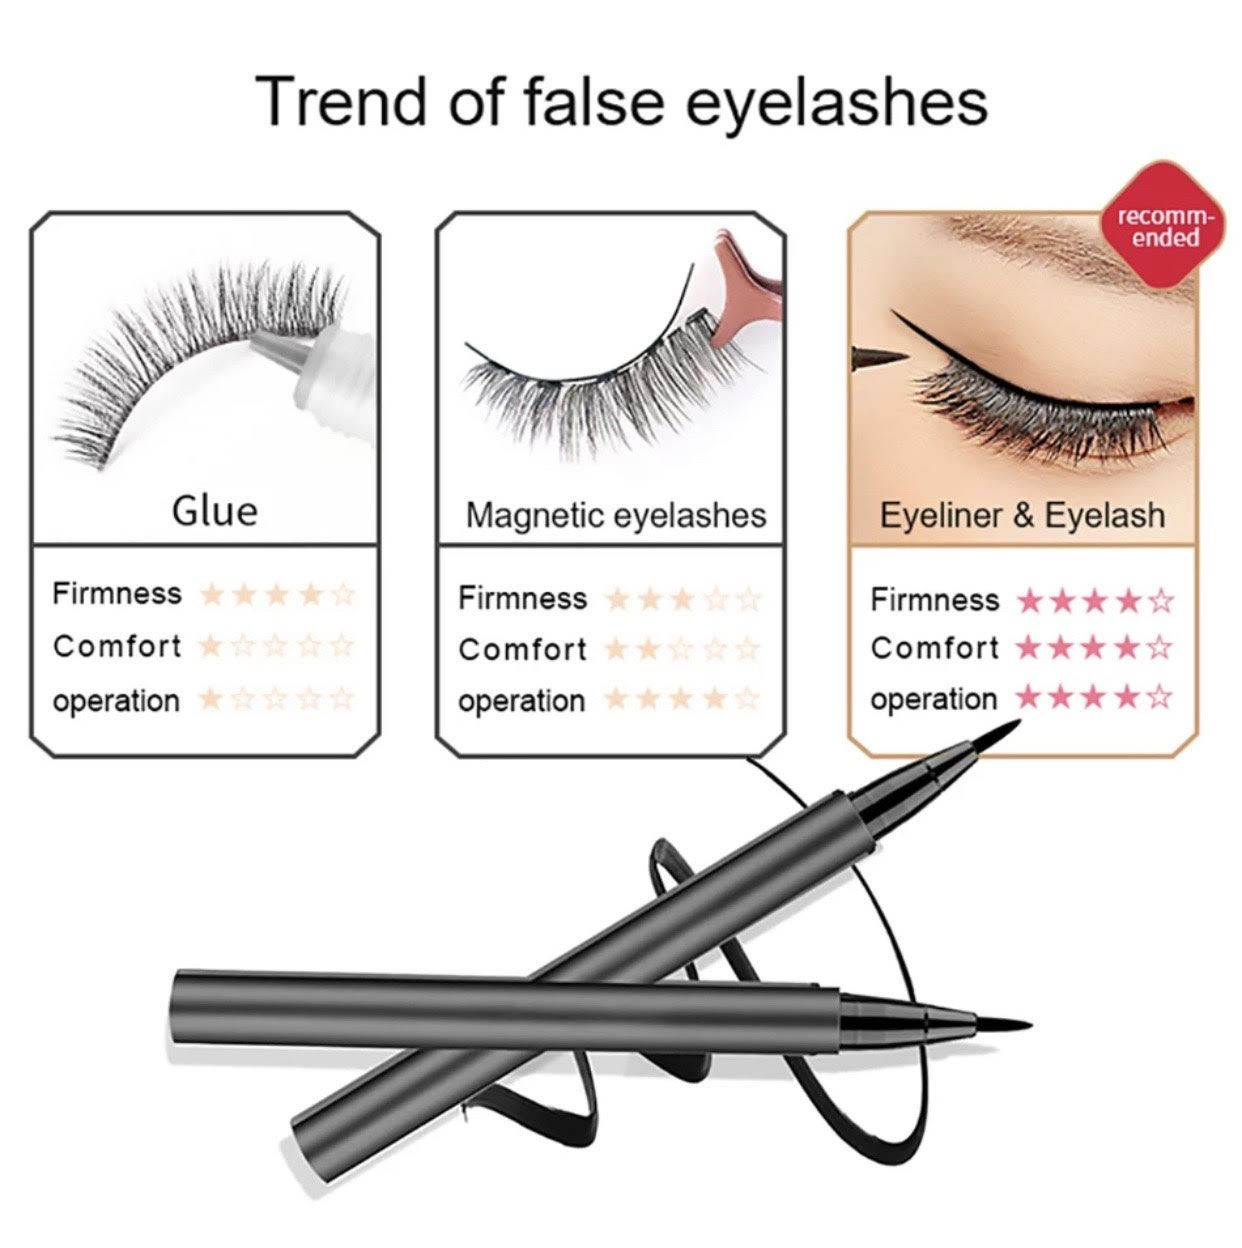 No Glue ! No Magnets ! iAgeless Magic Eyelash Kit (3 Pairs) + Patented Magic Liner + Mascara + Eyelash Curler (AU Stock) - iAgeless Beauty